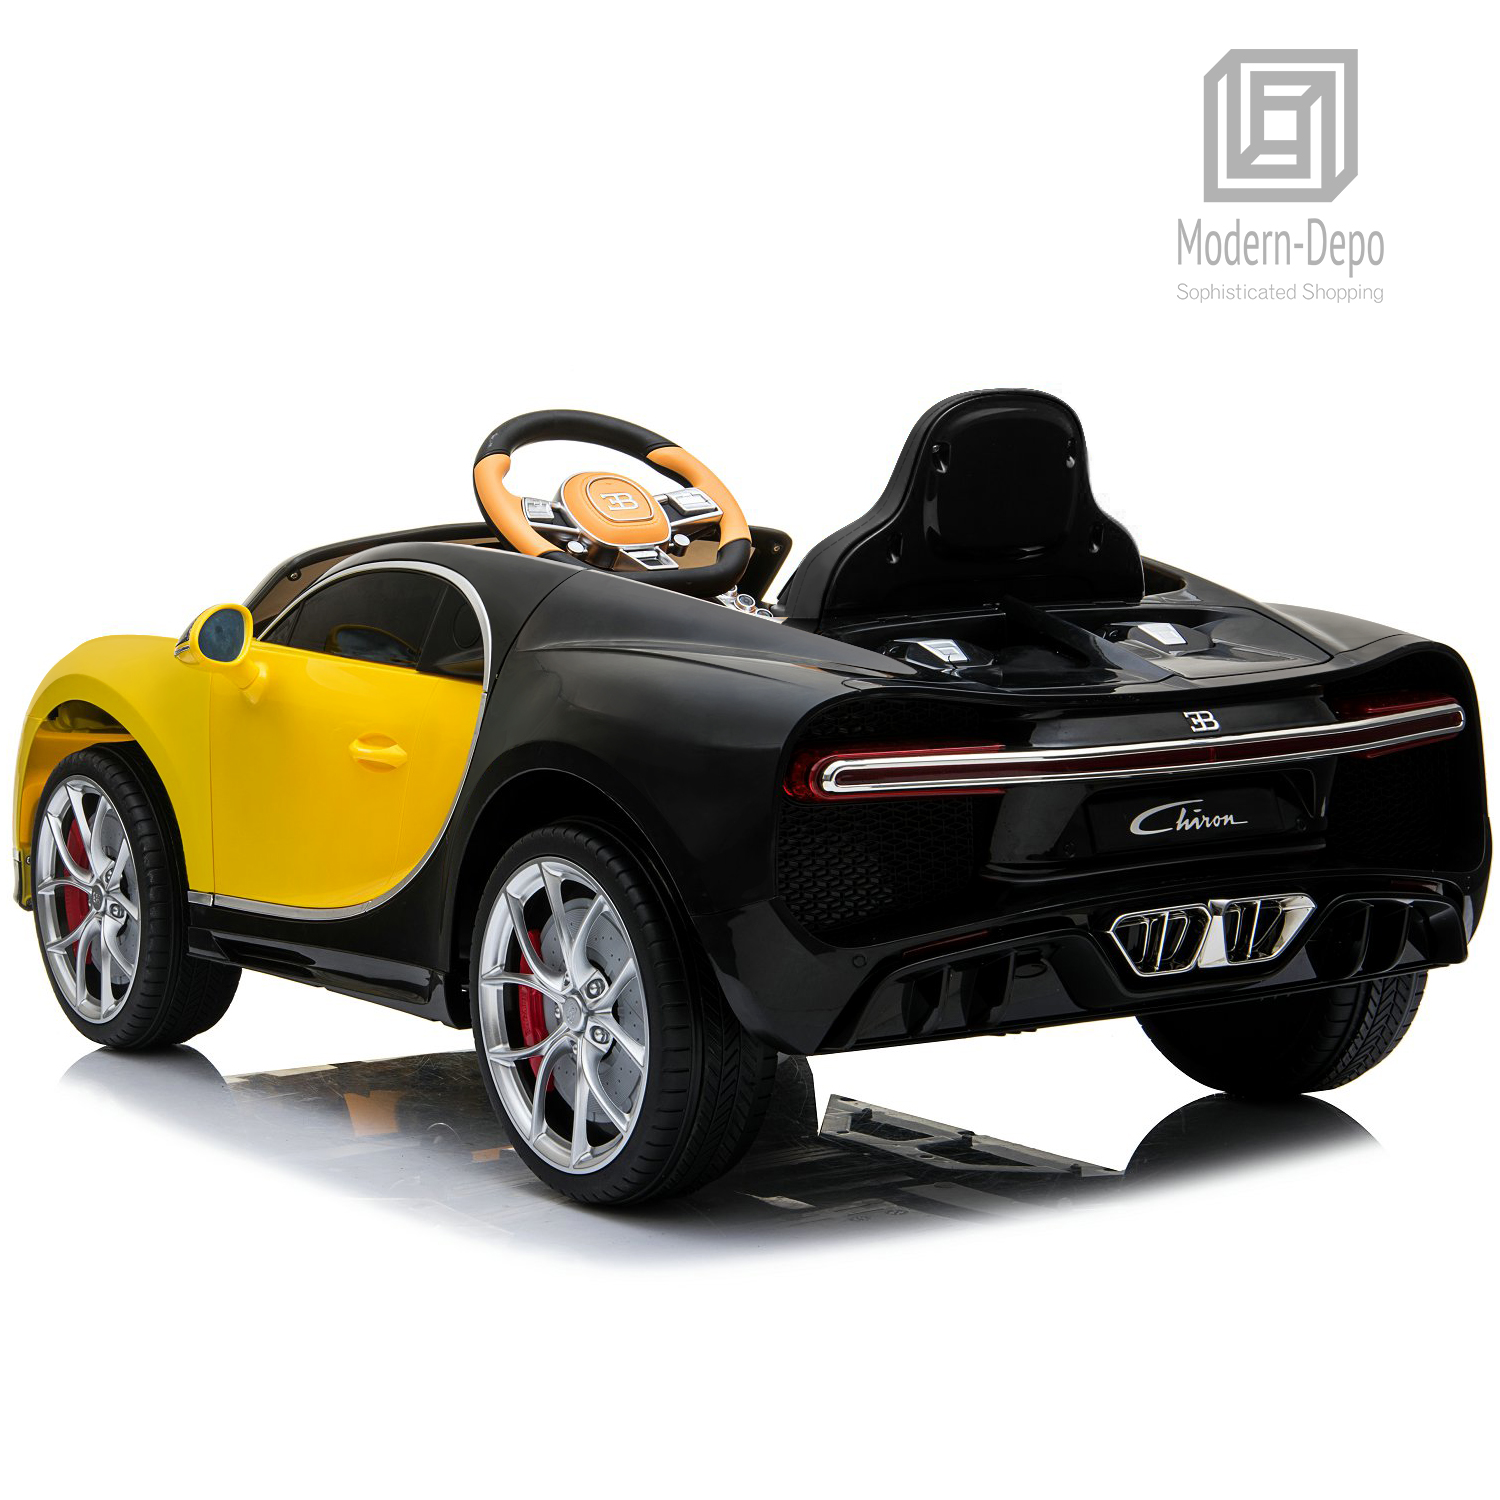 Bugatti-Chiron-12V-Kids-Ride-On-Car-with-Remote-Control-High-Speed-Motor miniature 46